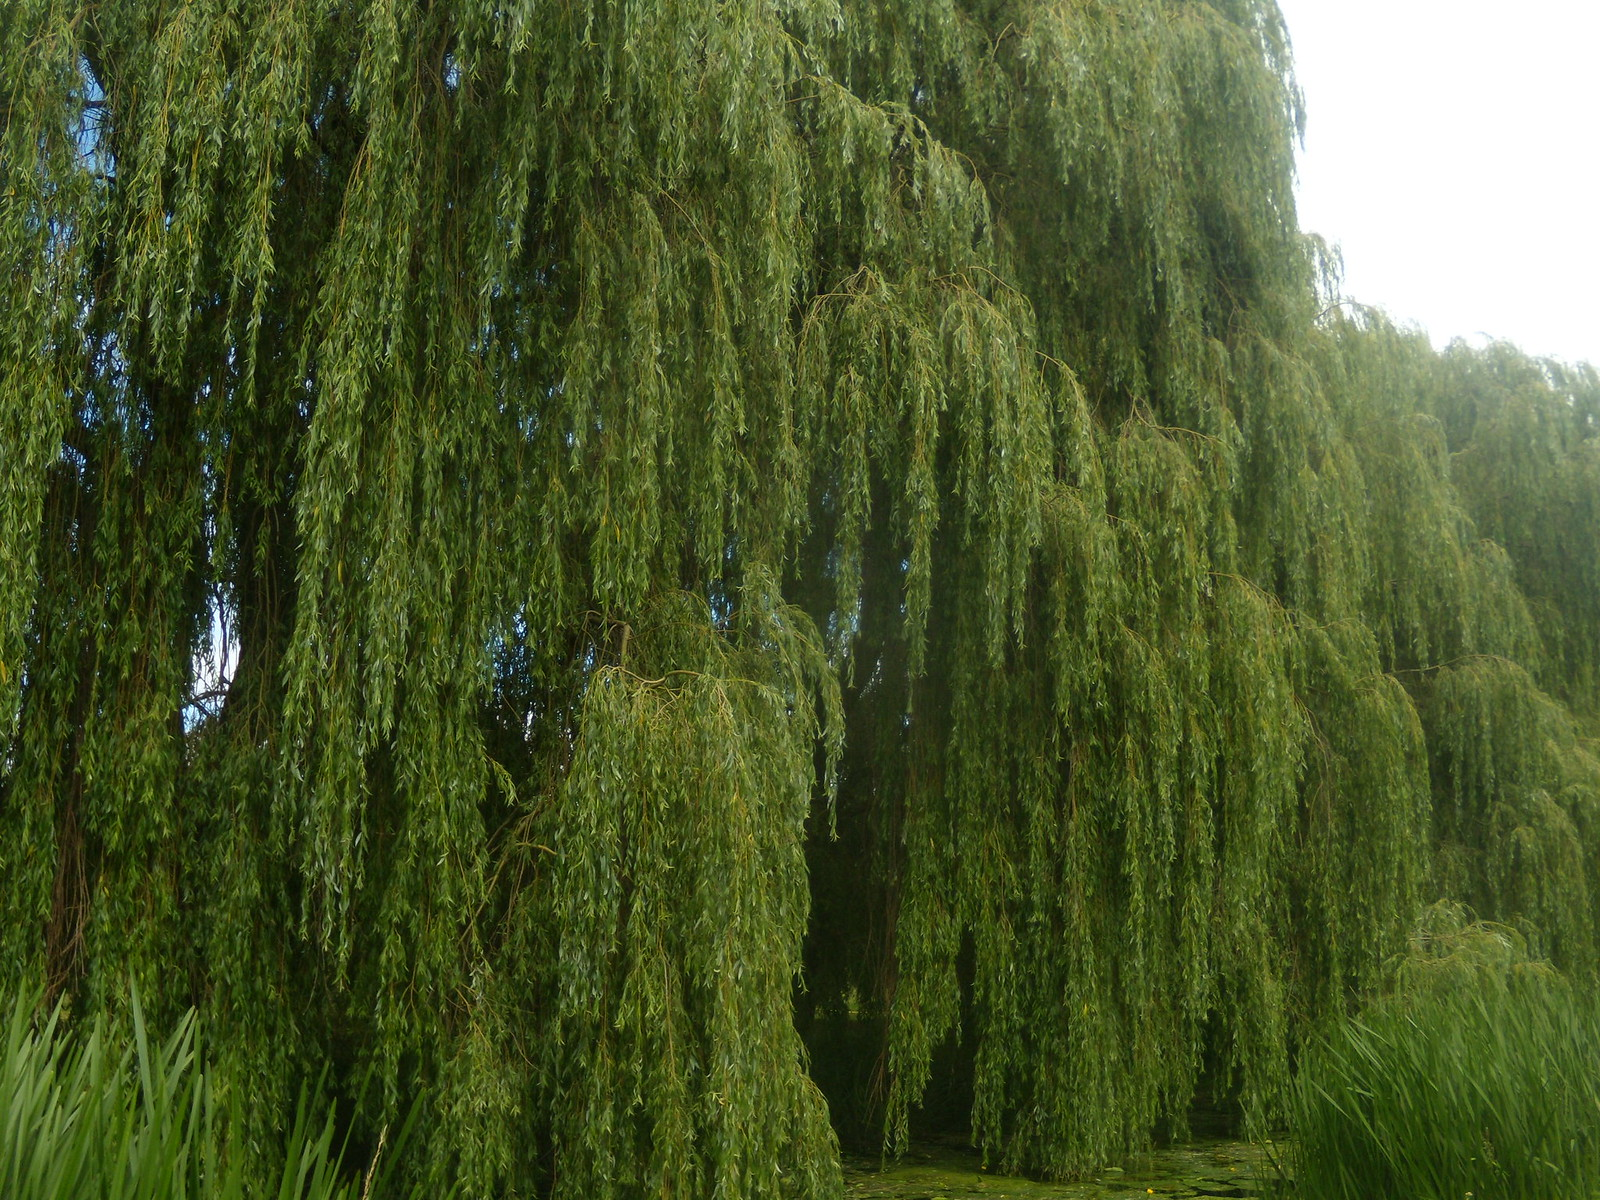 Willows on the Blackwater Kelvedon circular